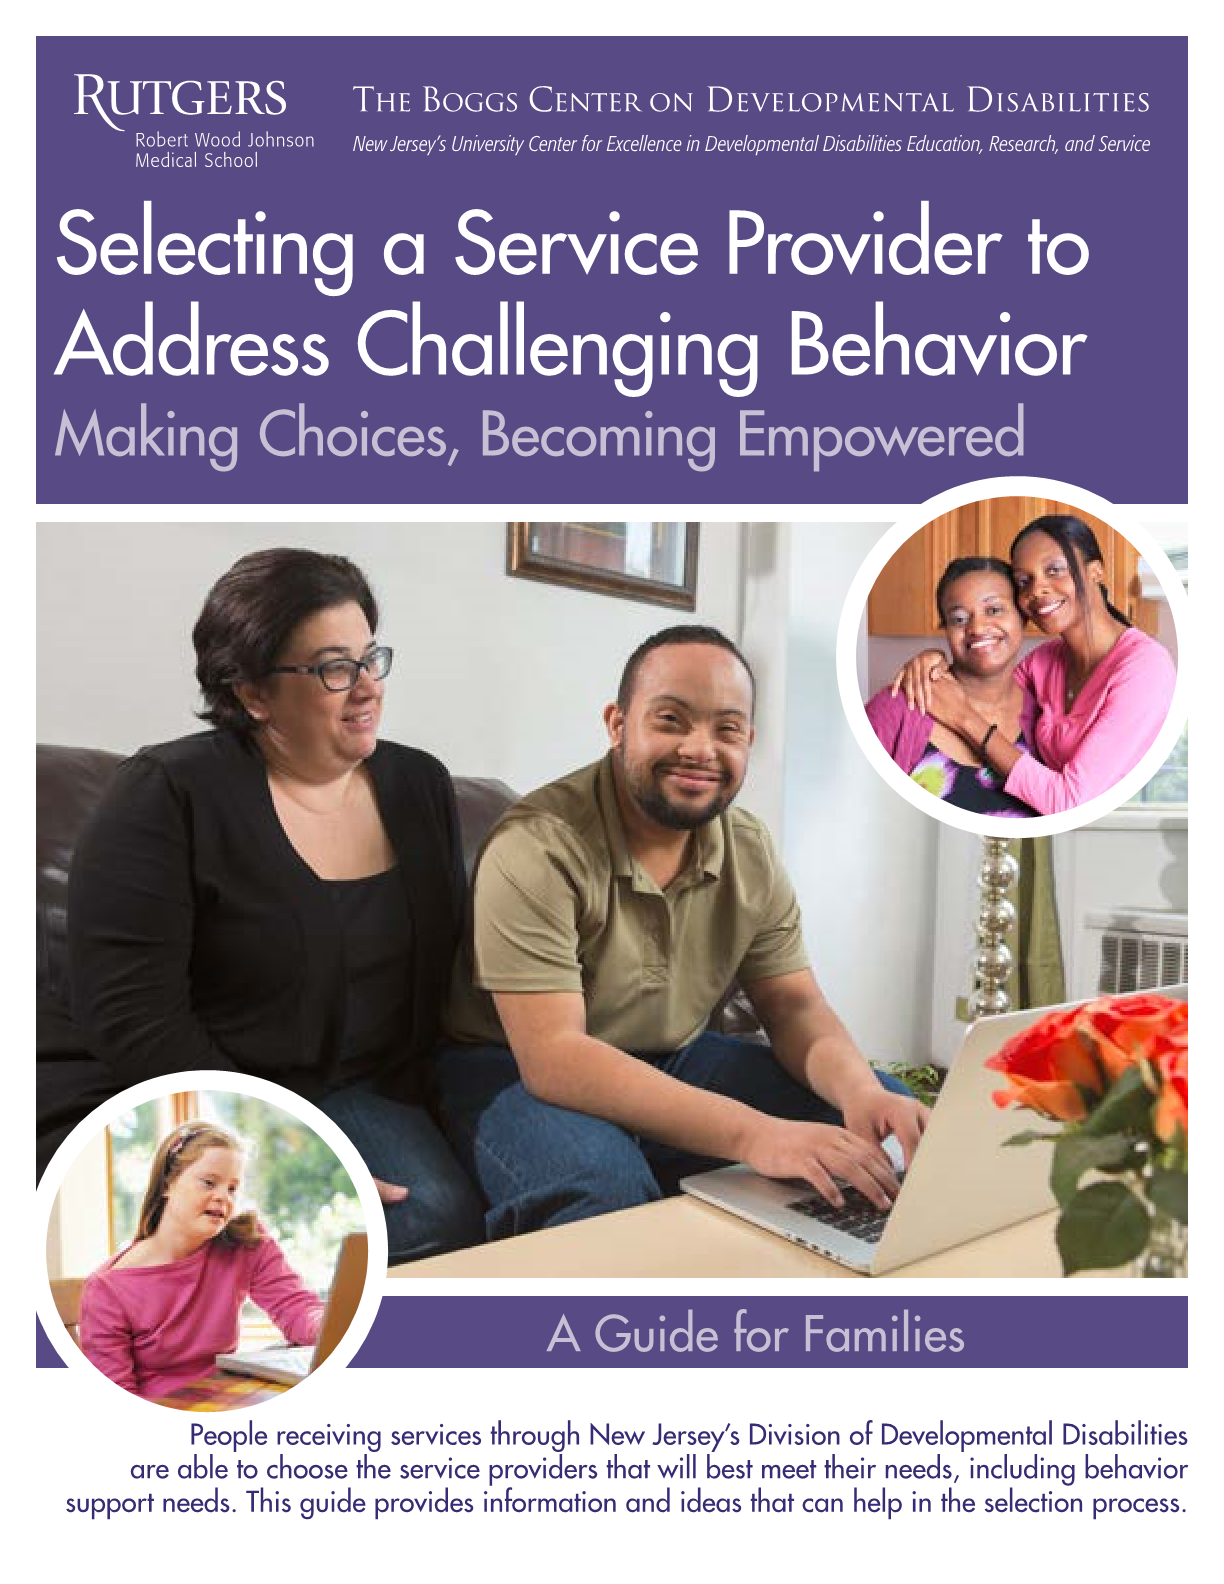 Selecting a Service Provider to Address Challenging Behavior:  Making Choices, Becoming Empowered